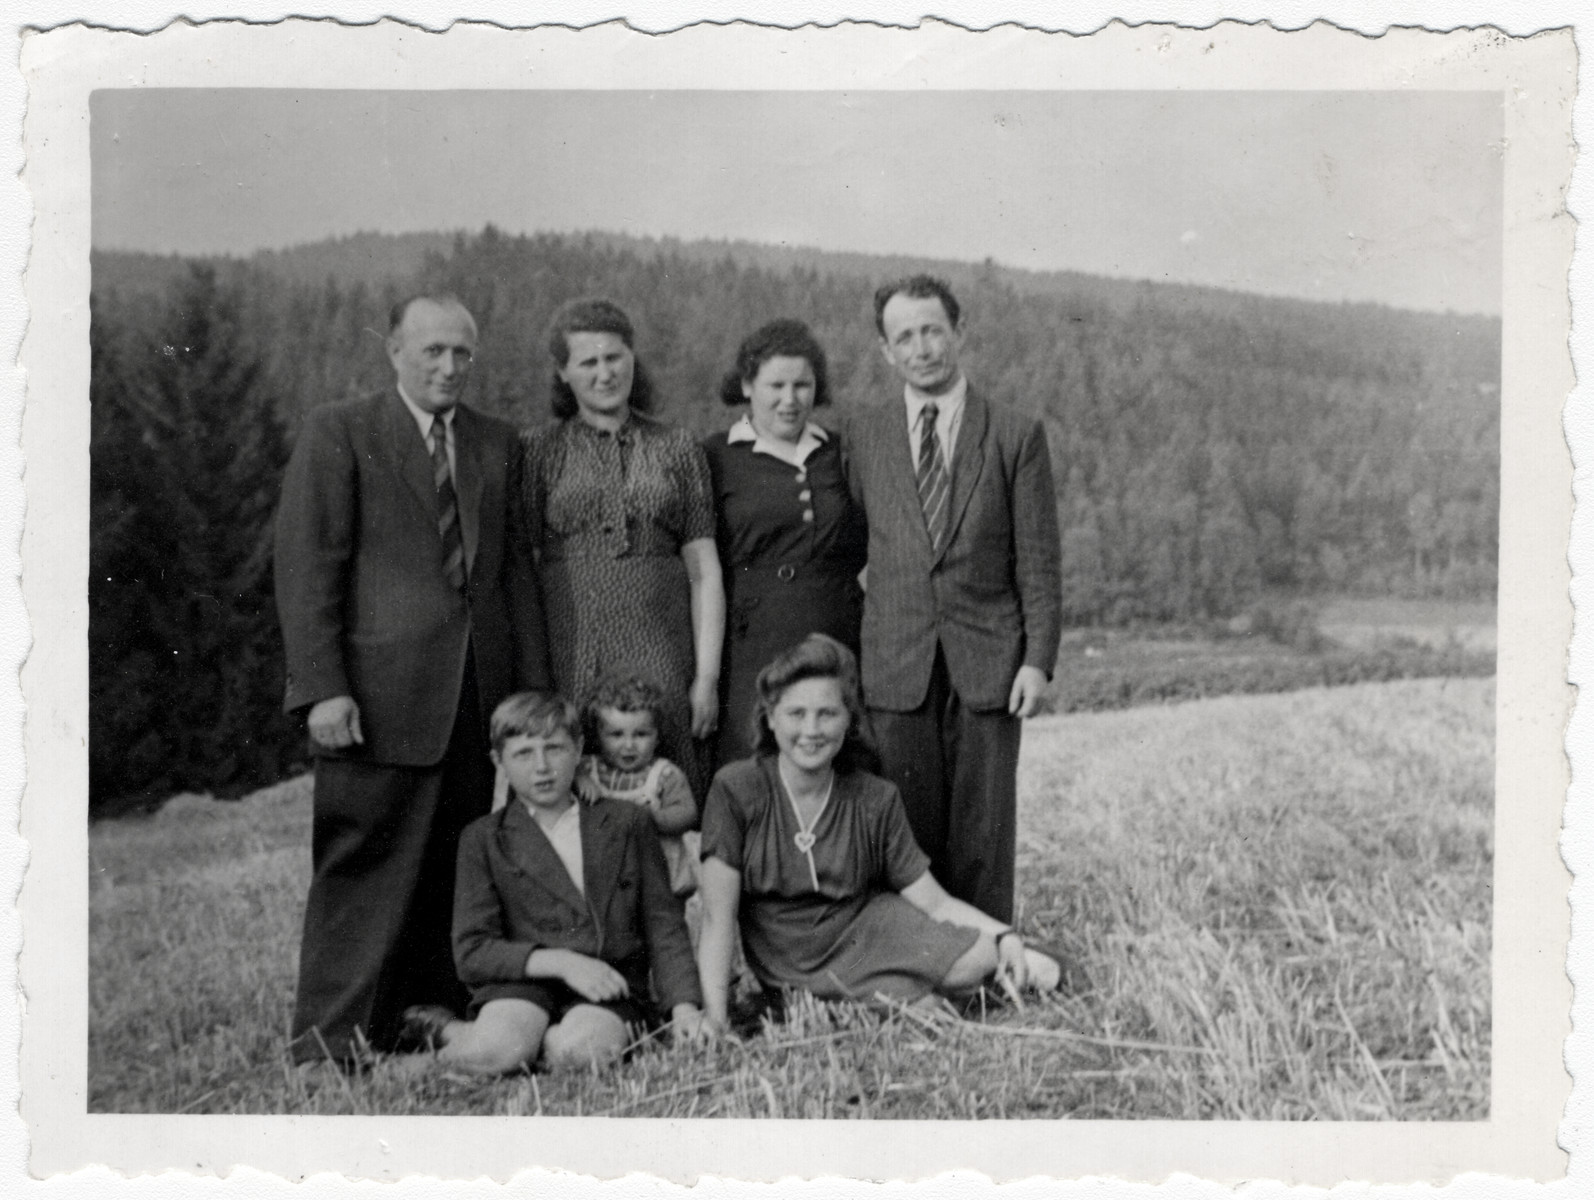 The Malach family poses with their friends and cousins, the Reichmans in Amberg.  Front row: Abraham Malach, Abraham Reichman and Bela Malach.  Standing: Mordka and Chana Malach and Gitl and Mordechai Reichman.